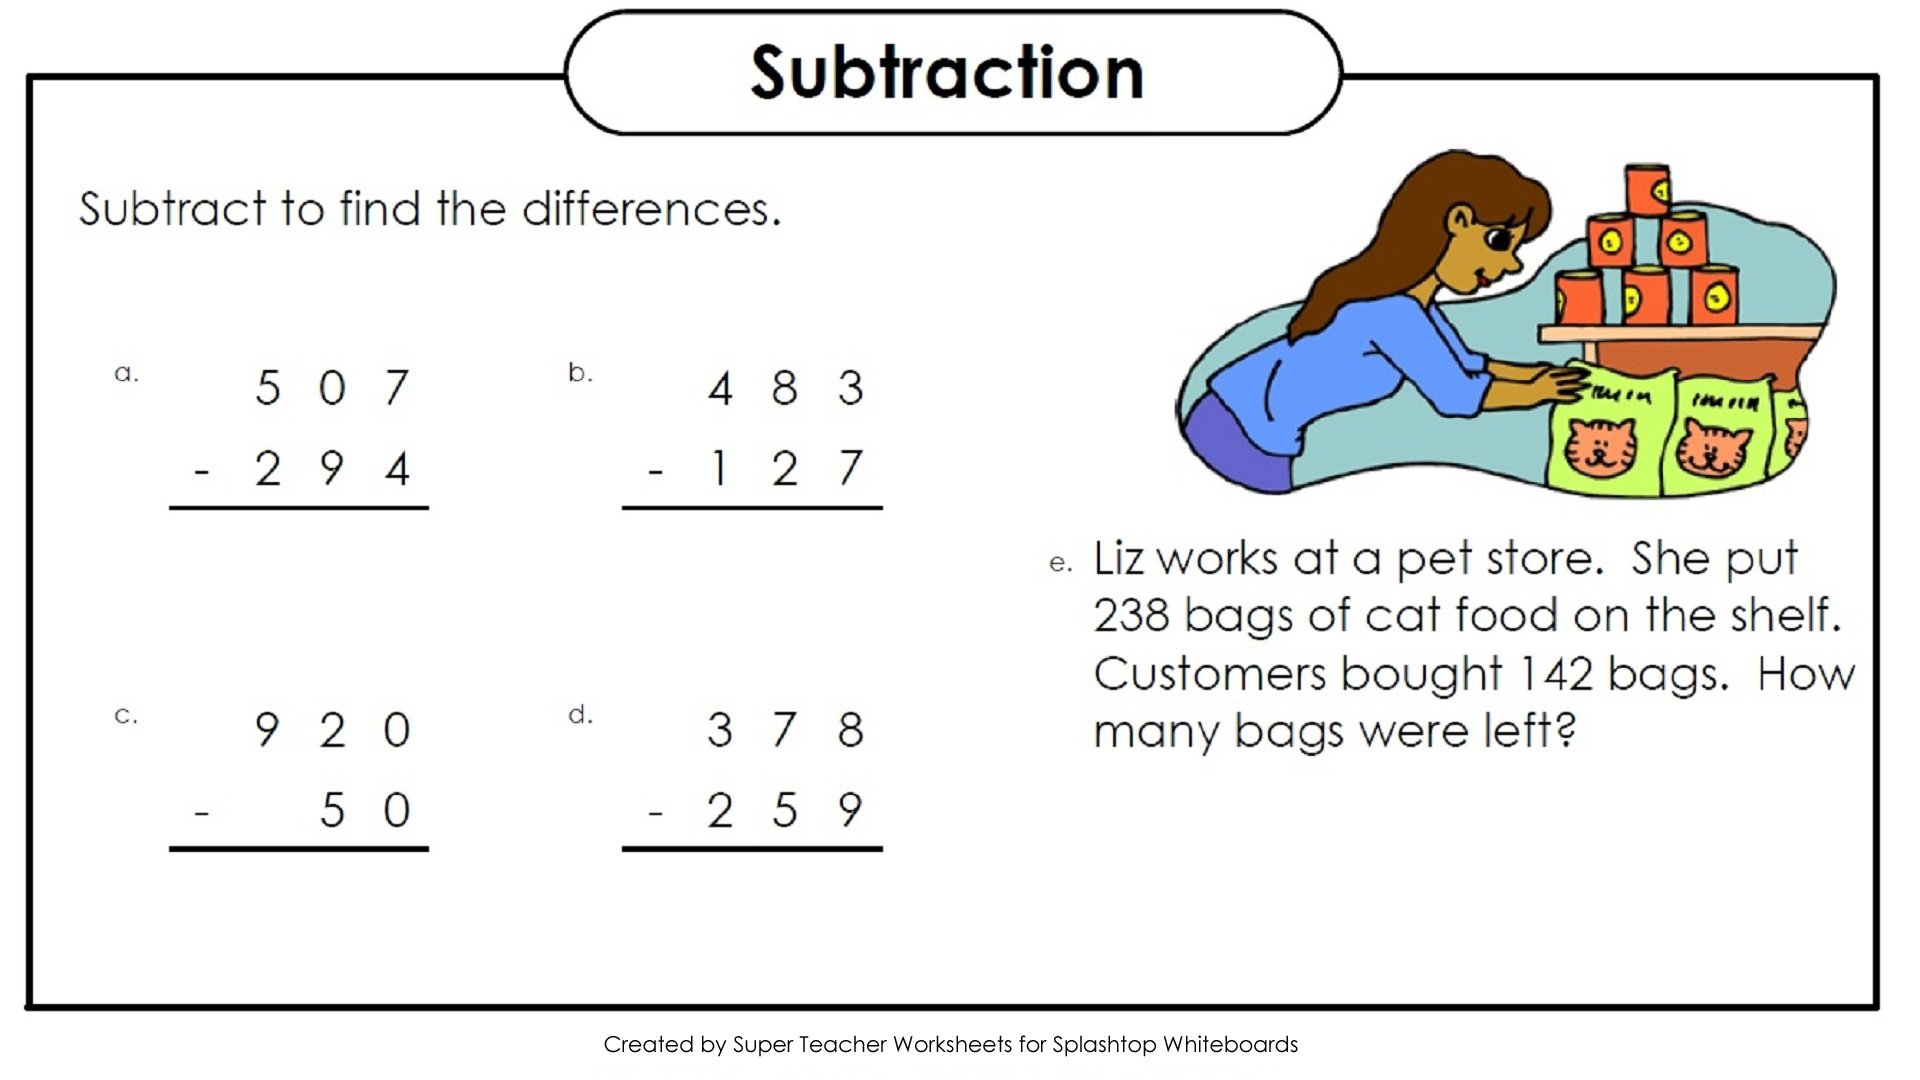 Worksheets Superteacher Worksheet splashtop whiteboard background graphics three digit subtraction